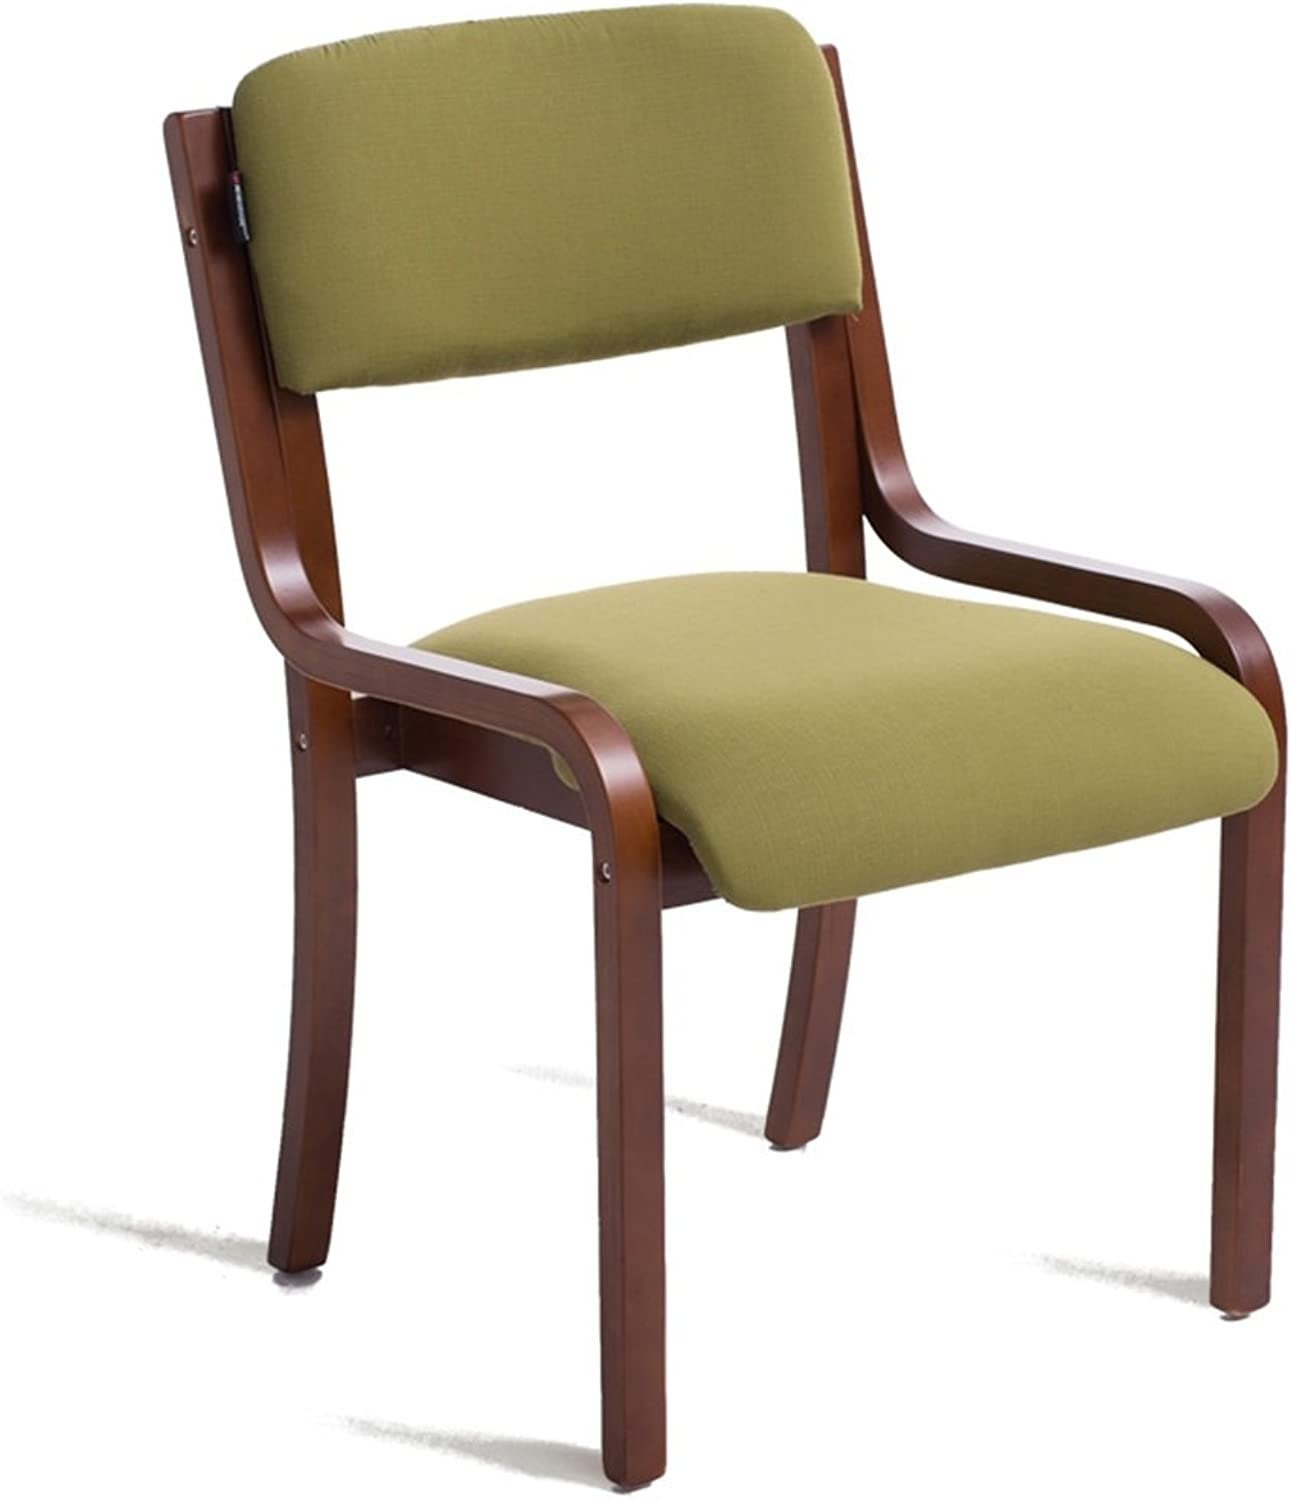 Wooden Chair Backrest That can be Used Desk Dining Makeup Learning Chair Home & Commercial Concise Style Brown Green